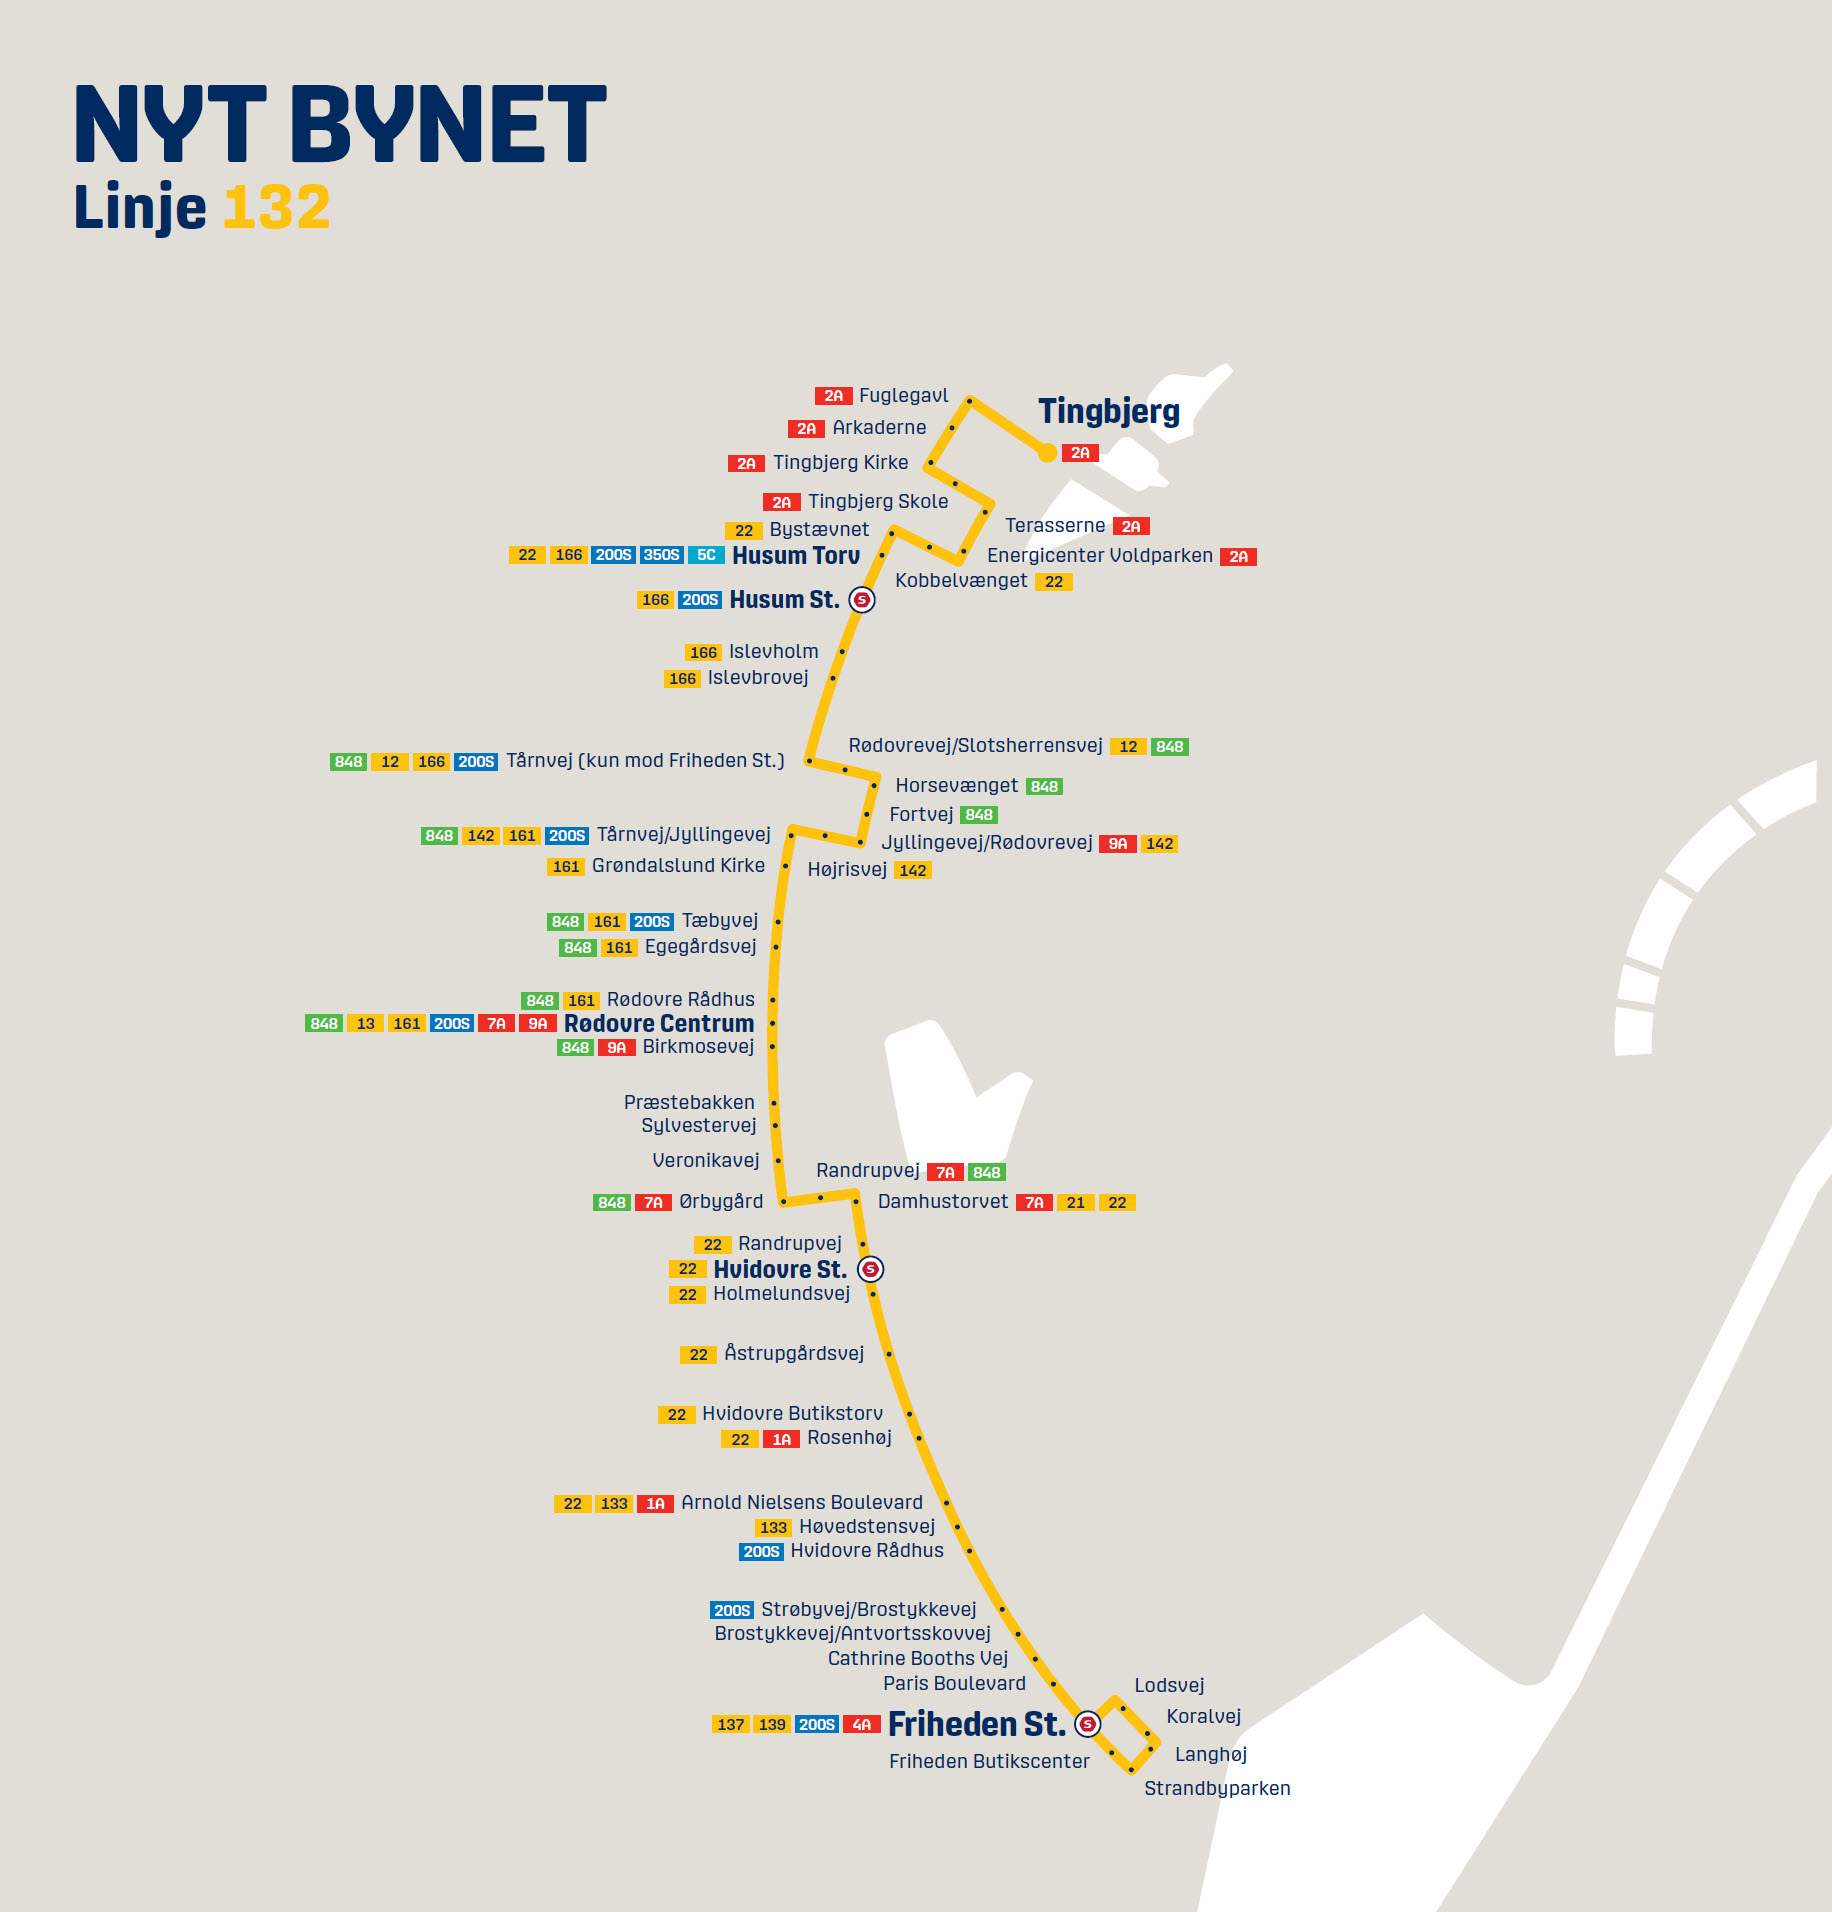 Map of the new line 132 in Nyt Bynet